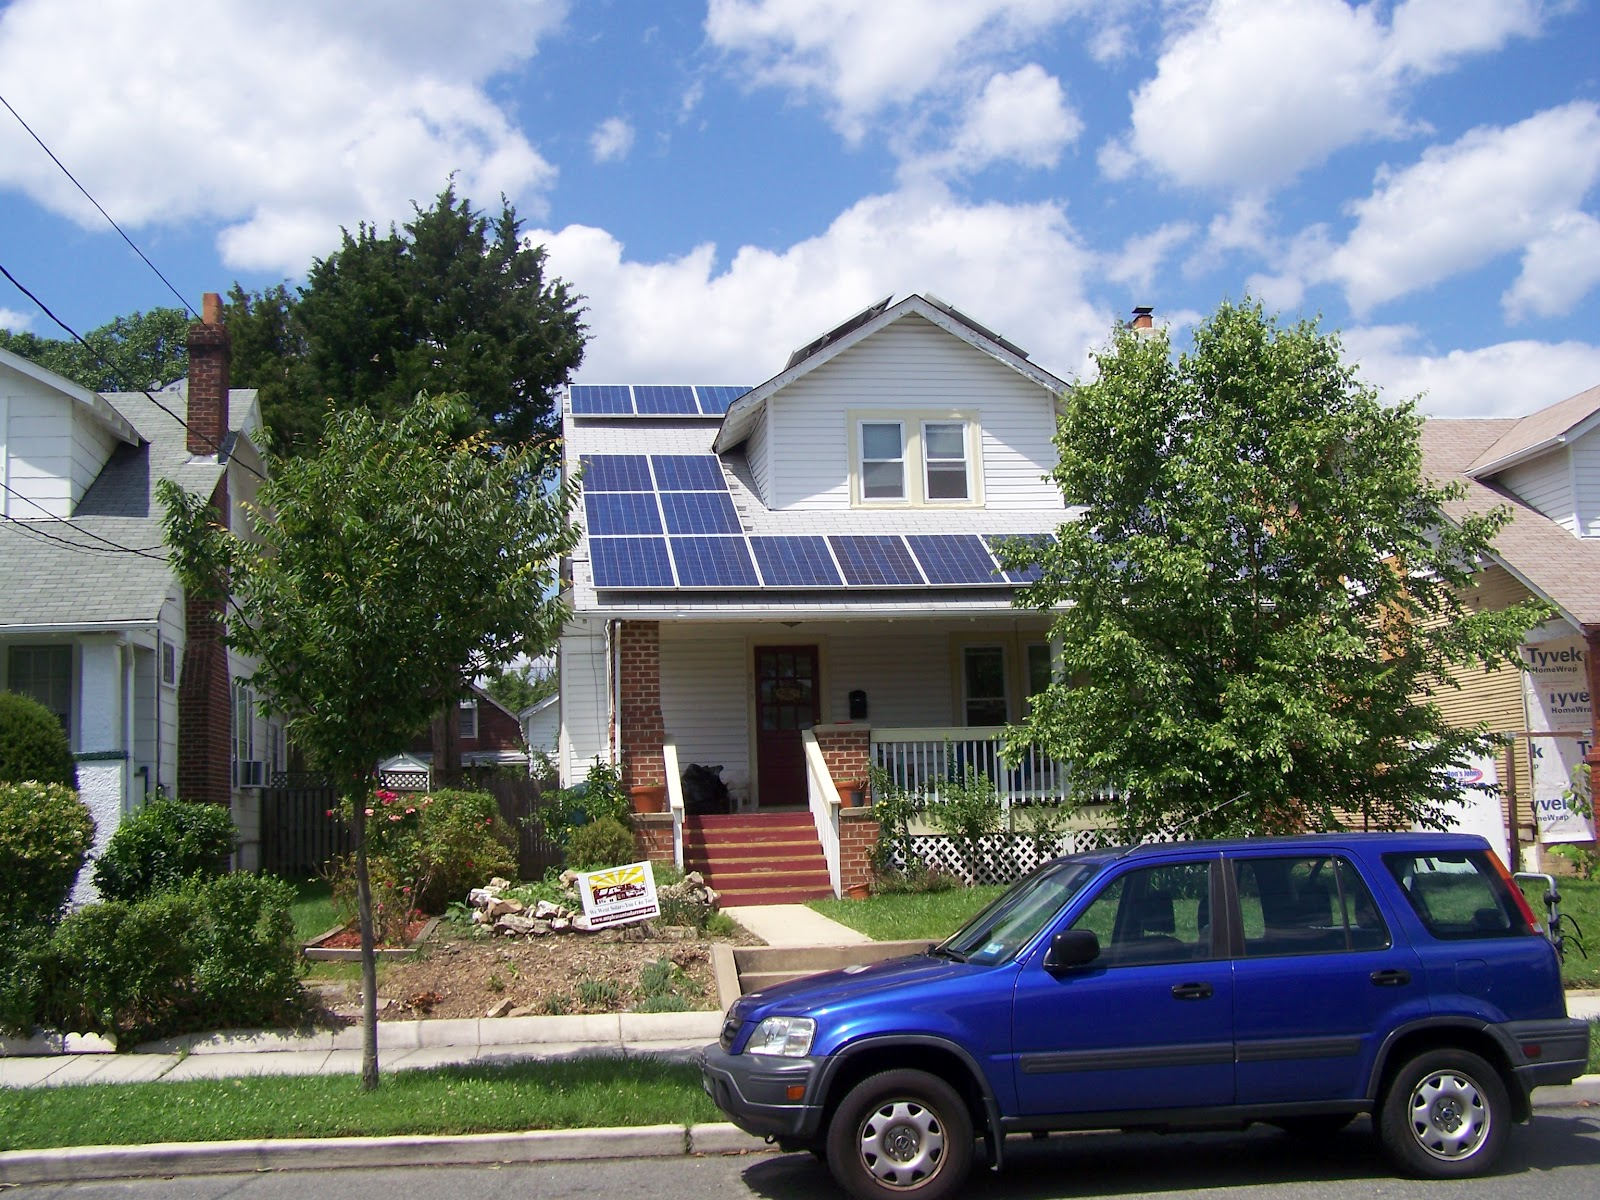 Rebuilding Place In The Urban Space Solar Panels And